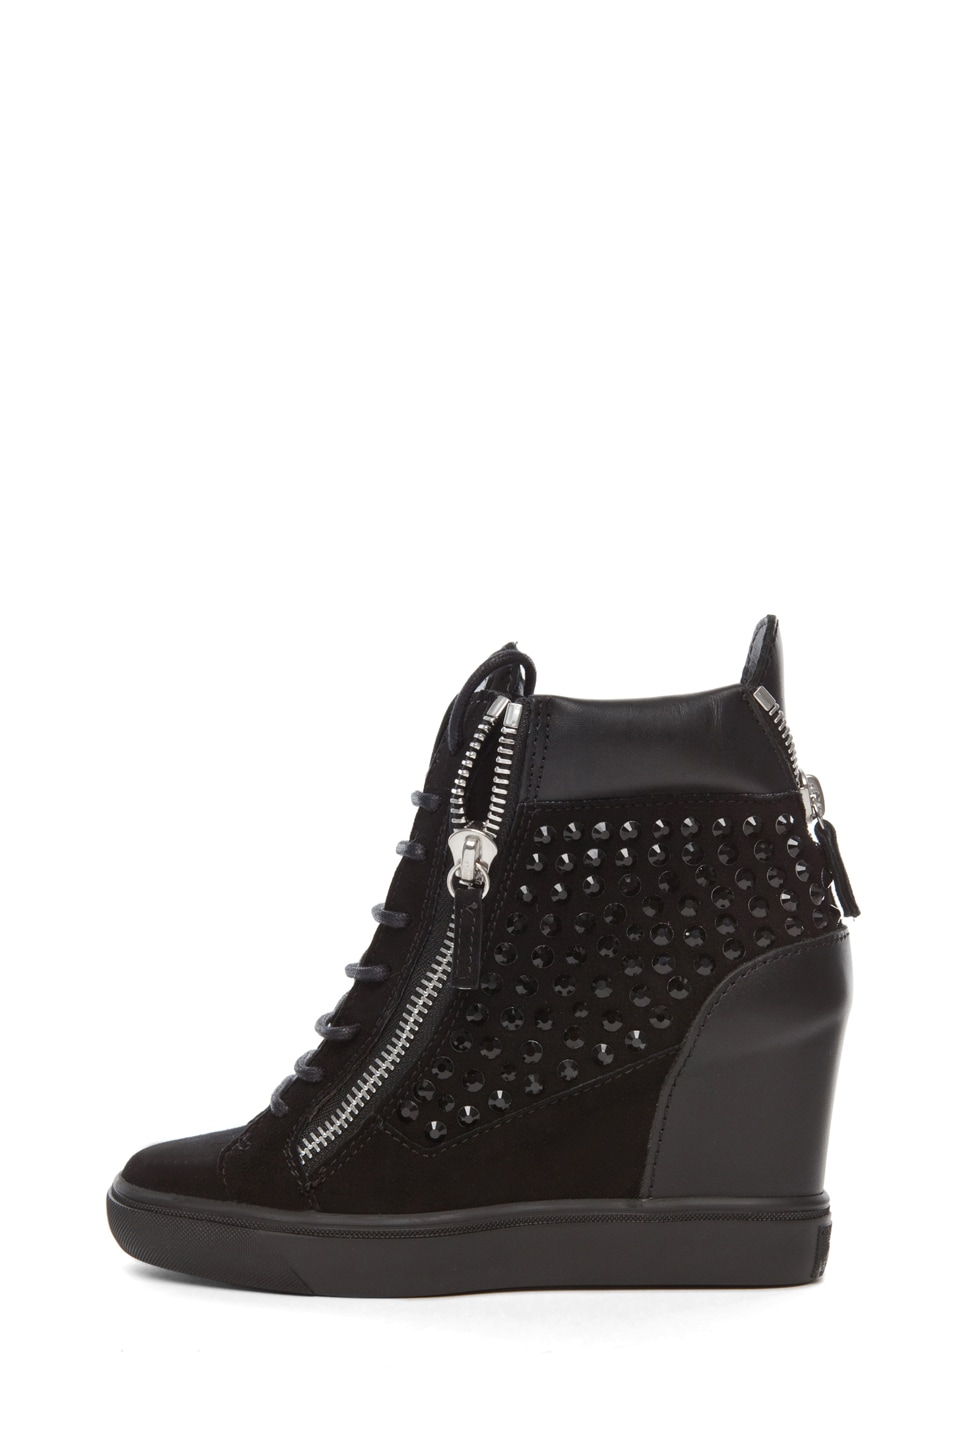 Image 1 of Giuseppe Zanotti Suede & Leather Embellished Wedge Sneakers in Black